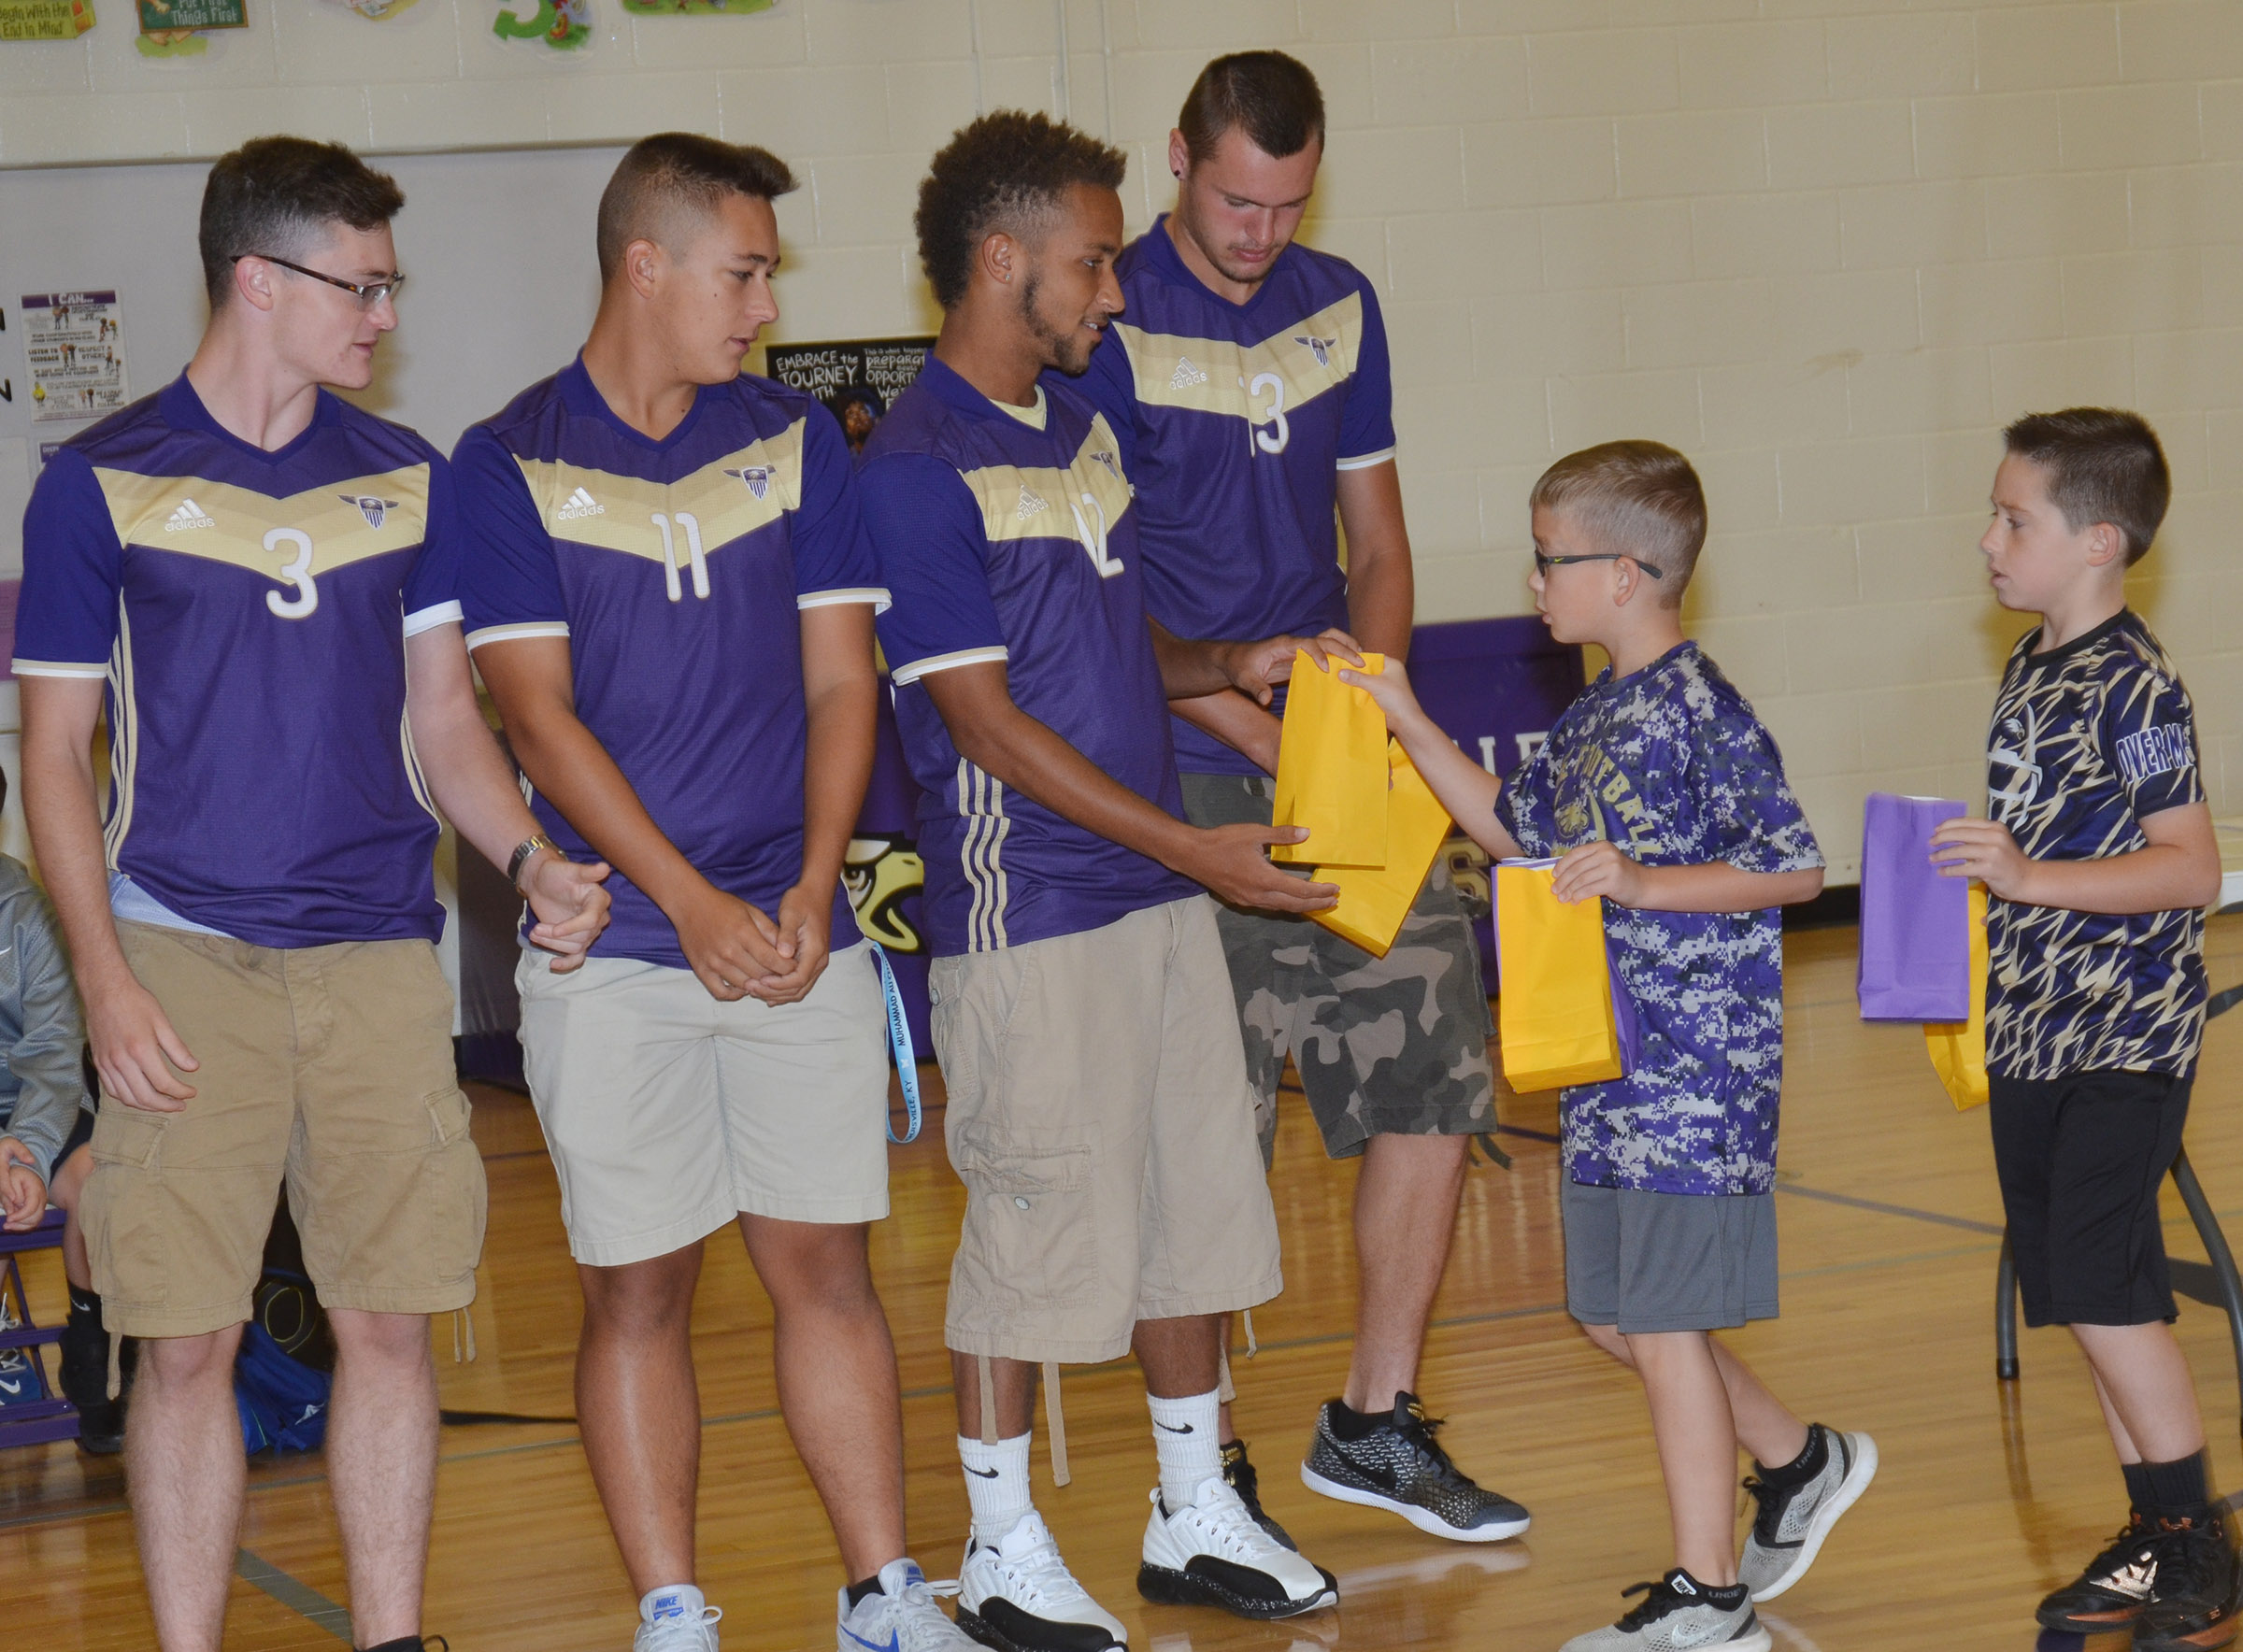 CES fourth-grader Cameron Estes, at left, and third-grader Lanigan Price give CHS soccer players, from left, seniors Bryce Richardson, Cody Davis, Ethan Lay and Logan Cole.